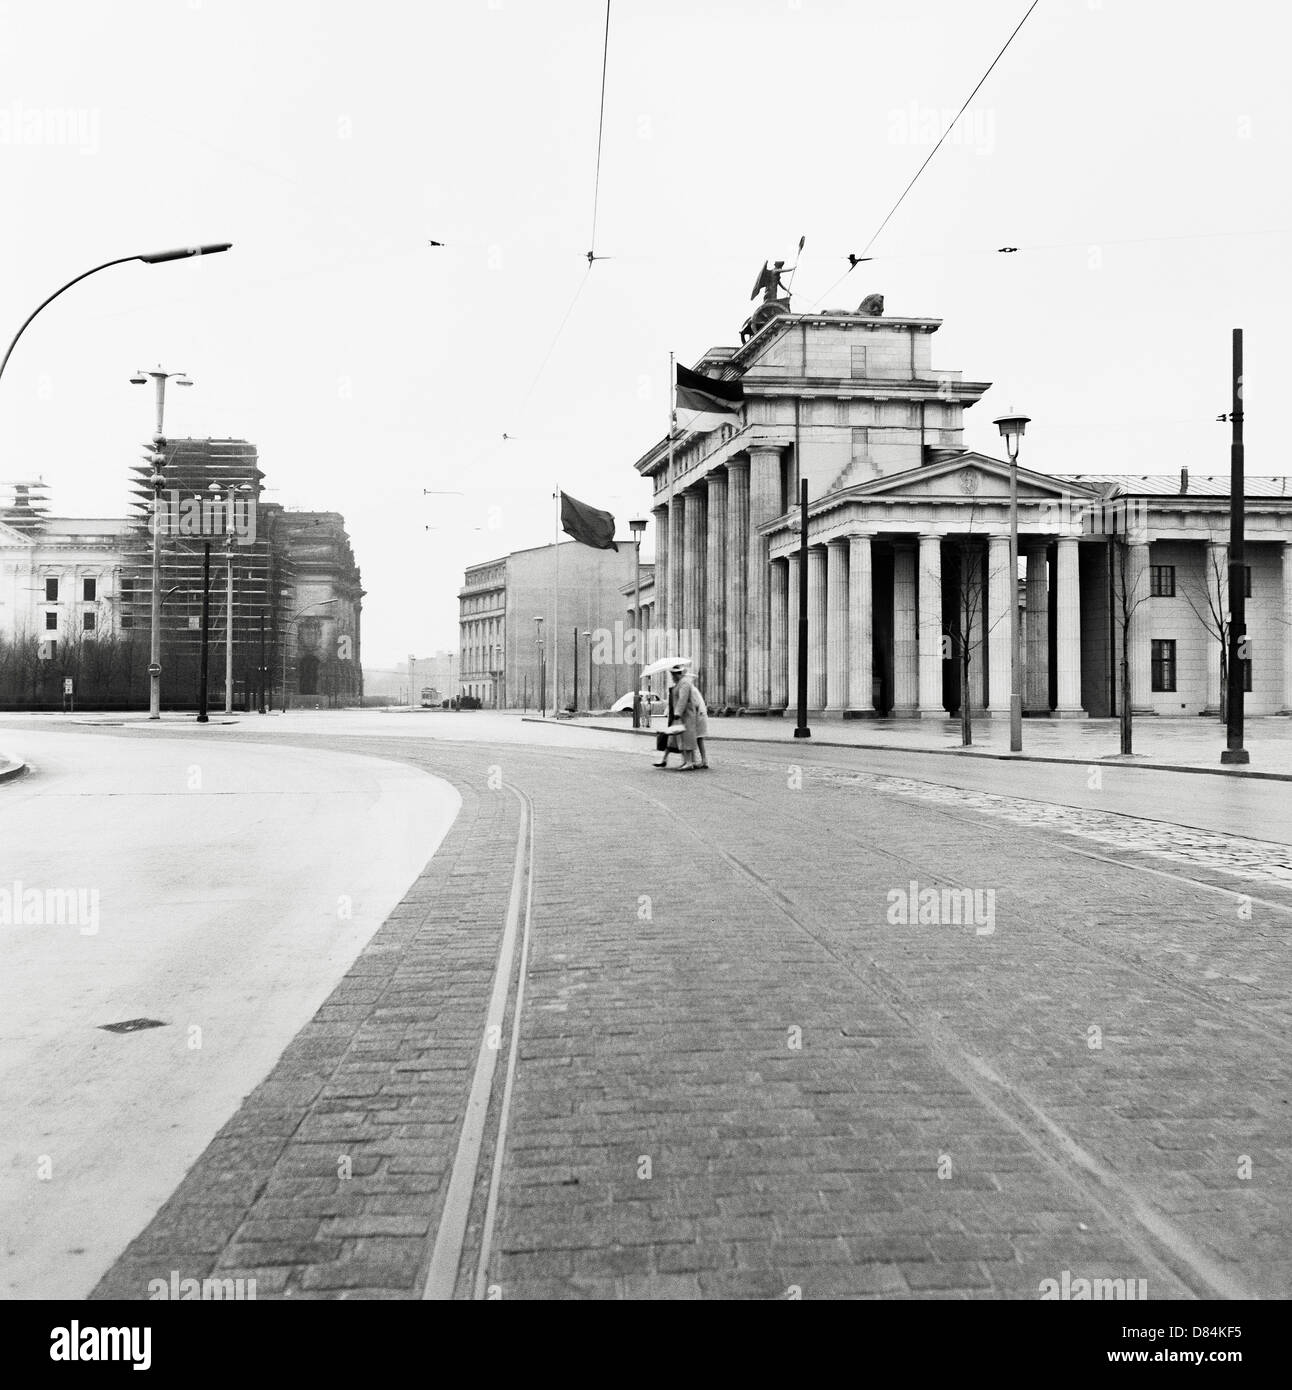 March 1959, Tram tracks, 18th of March square and Brandenburg gate, East Berlin, Germany, Europe - Stock Image